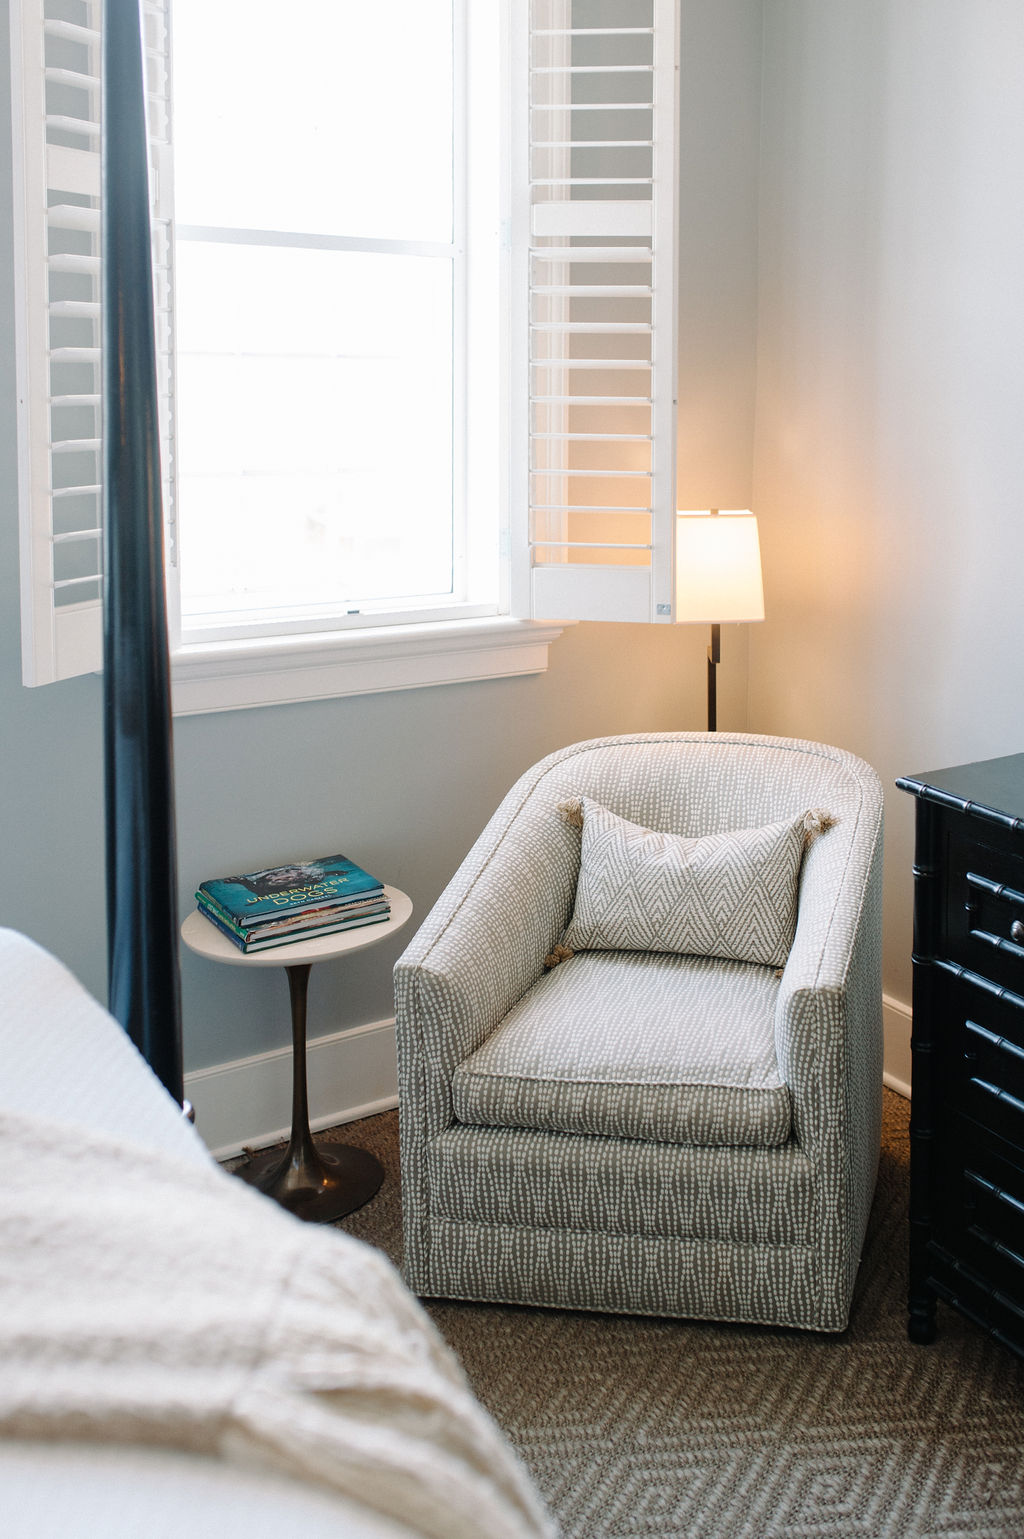 Comfortable sitting chair next to window in Room 10